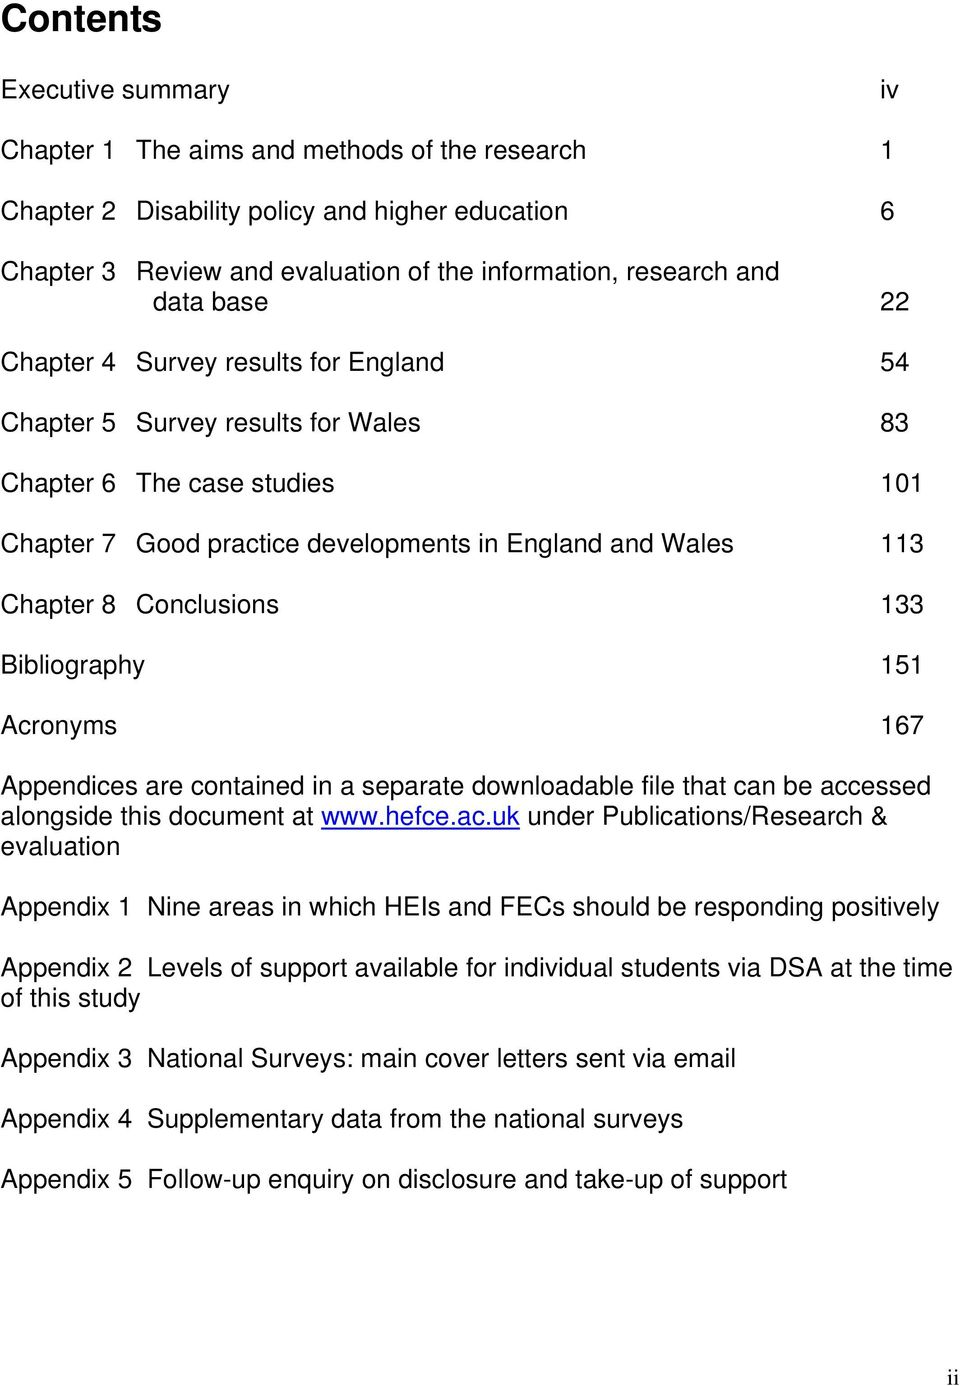 Conclusions 133 Bibliography 151 Acronyms 167 Appendices are contained in a separate downloadable file that can be acc